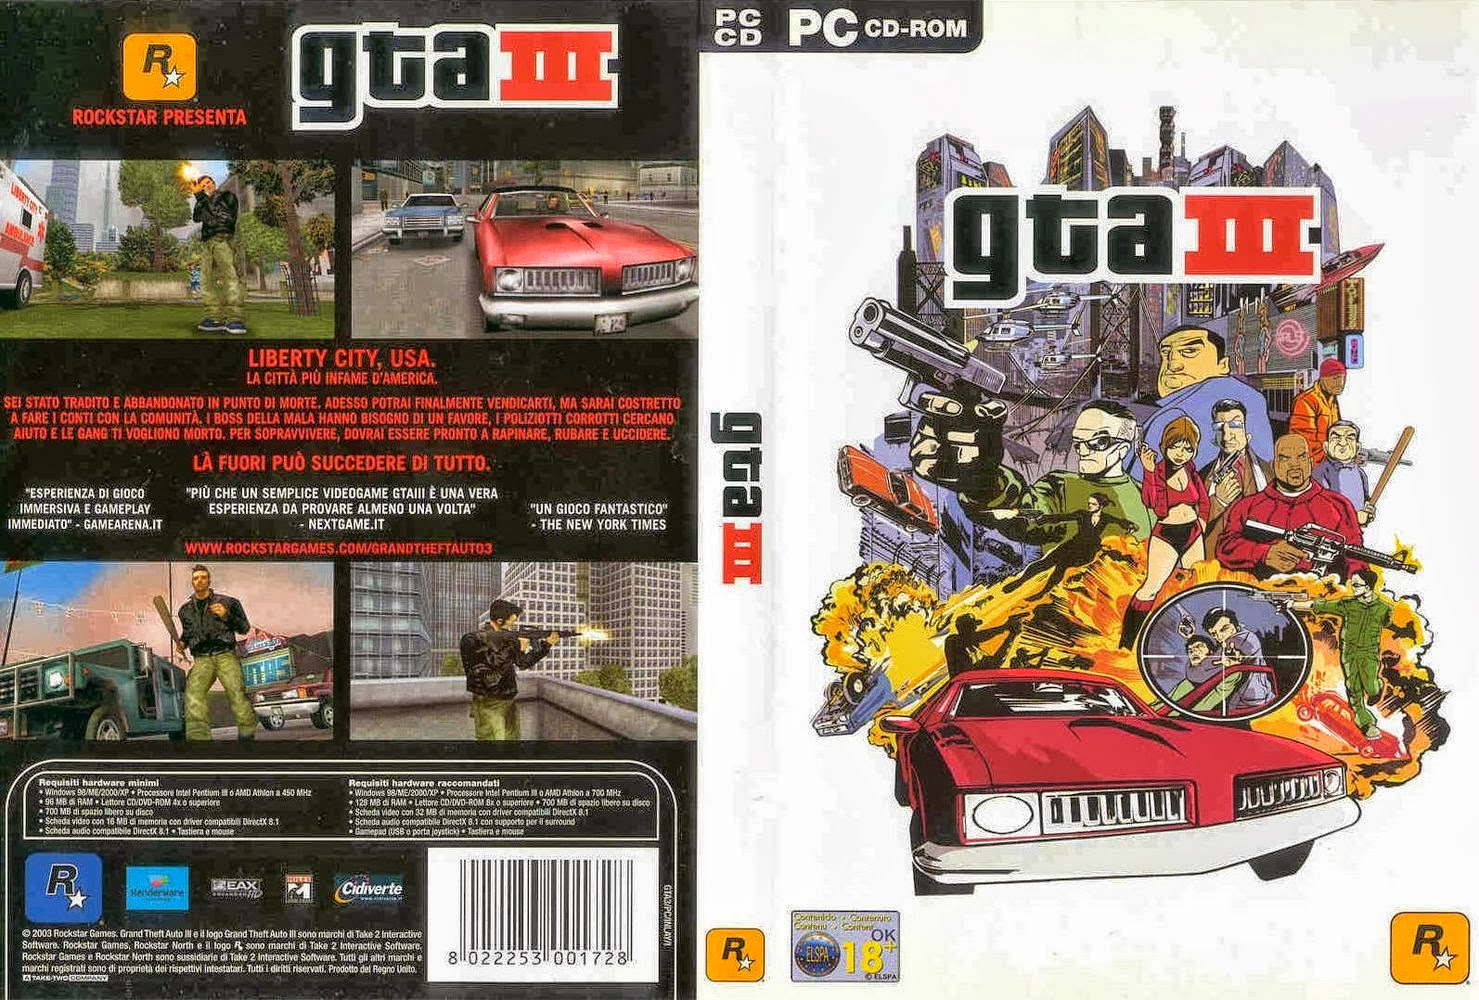 | GTA III - 3 - Liberty City DOWNLOAD |